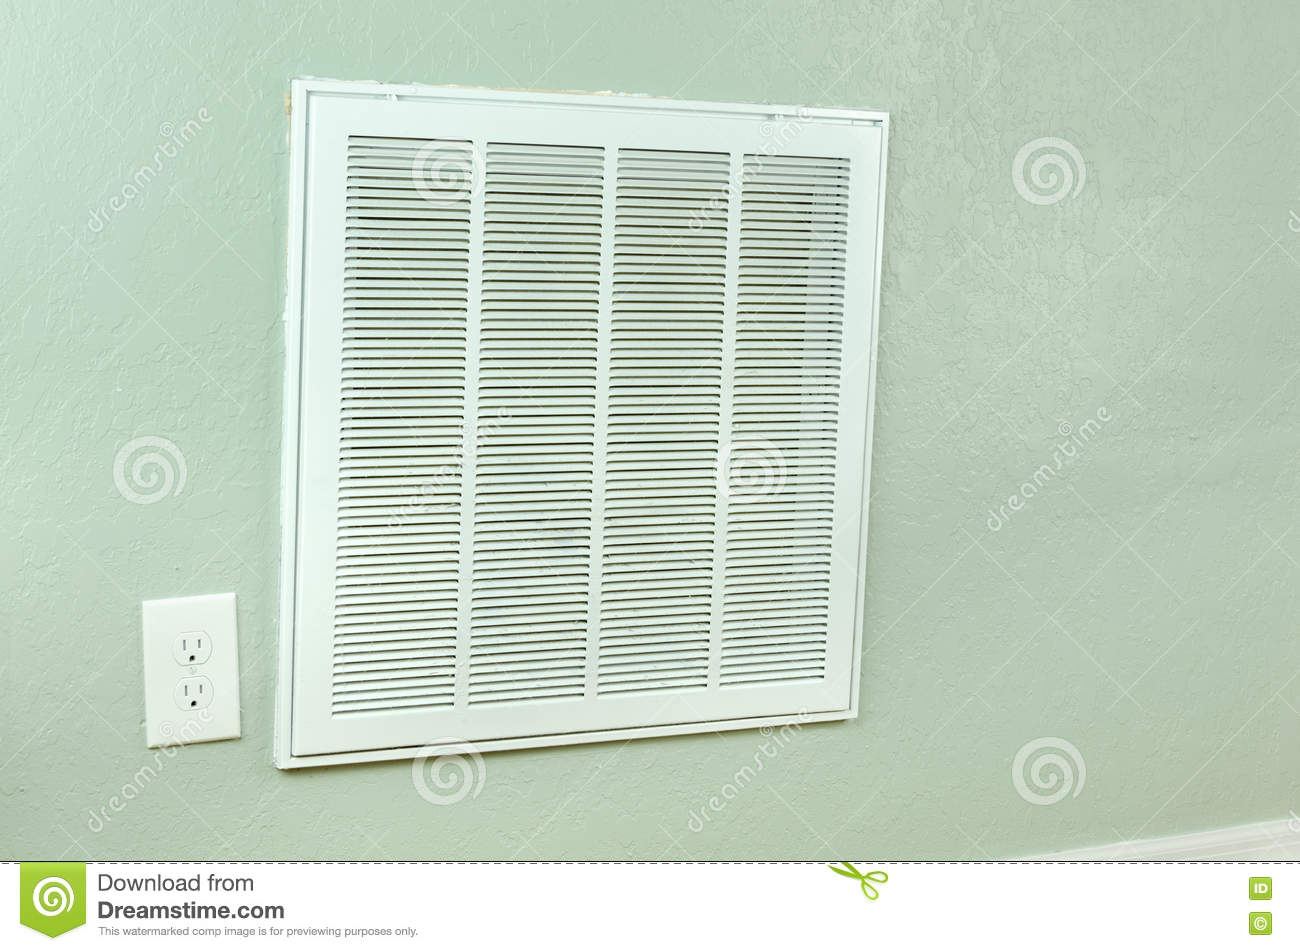 #85A724 House Air Conditioner Filter Intake Vent On Wall Stock  Highly Rated 4589 Hvac Wall Vents wallpapers with 1300x951 px on helpvideos.info - Air Conditioners, Air Coolers and more